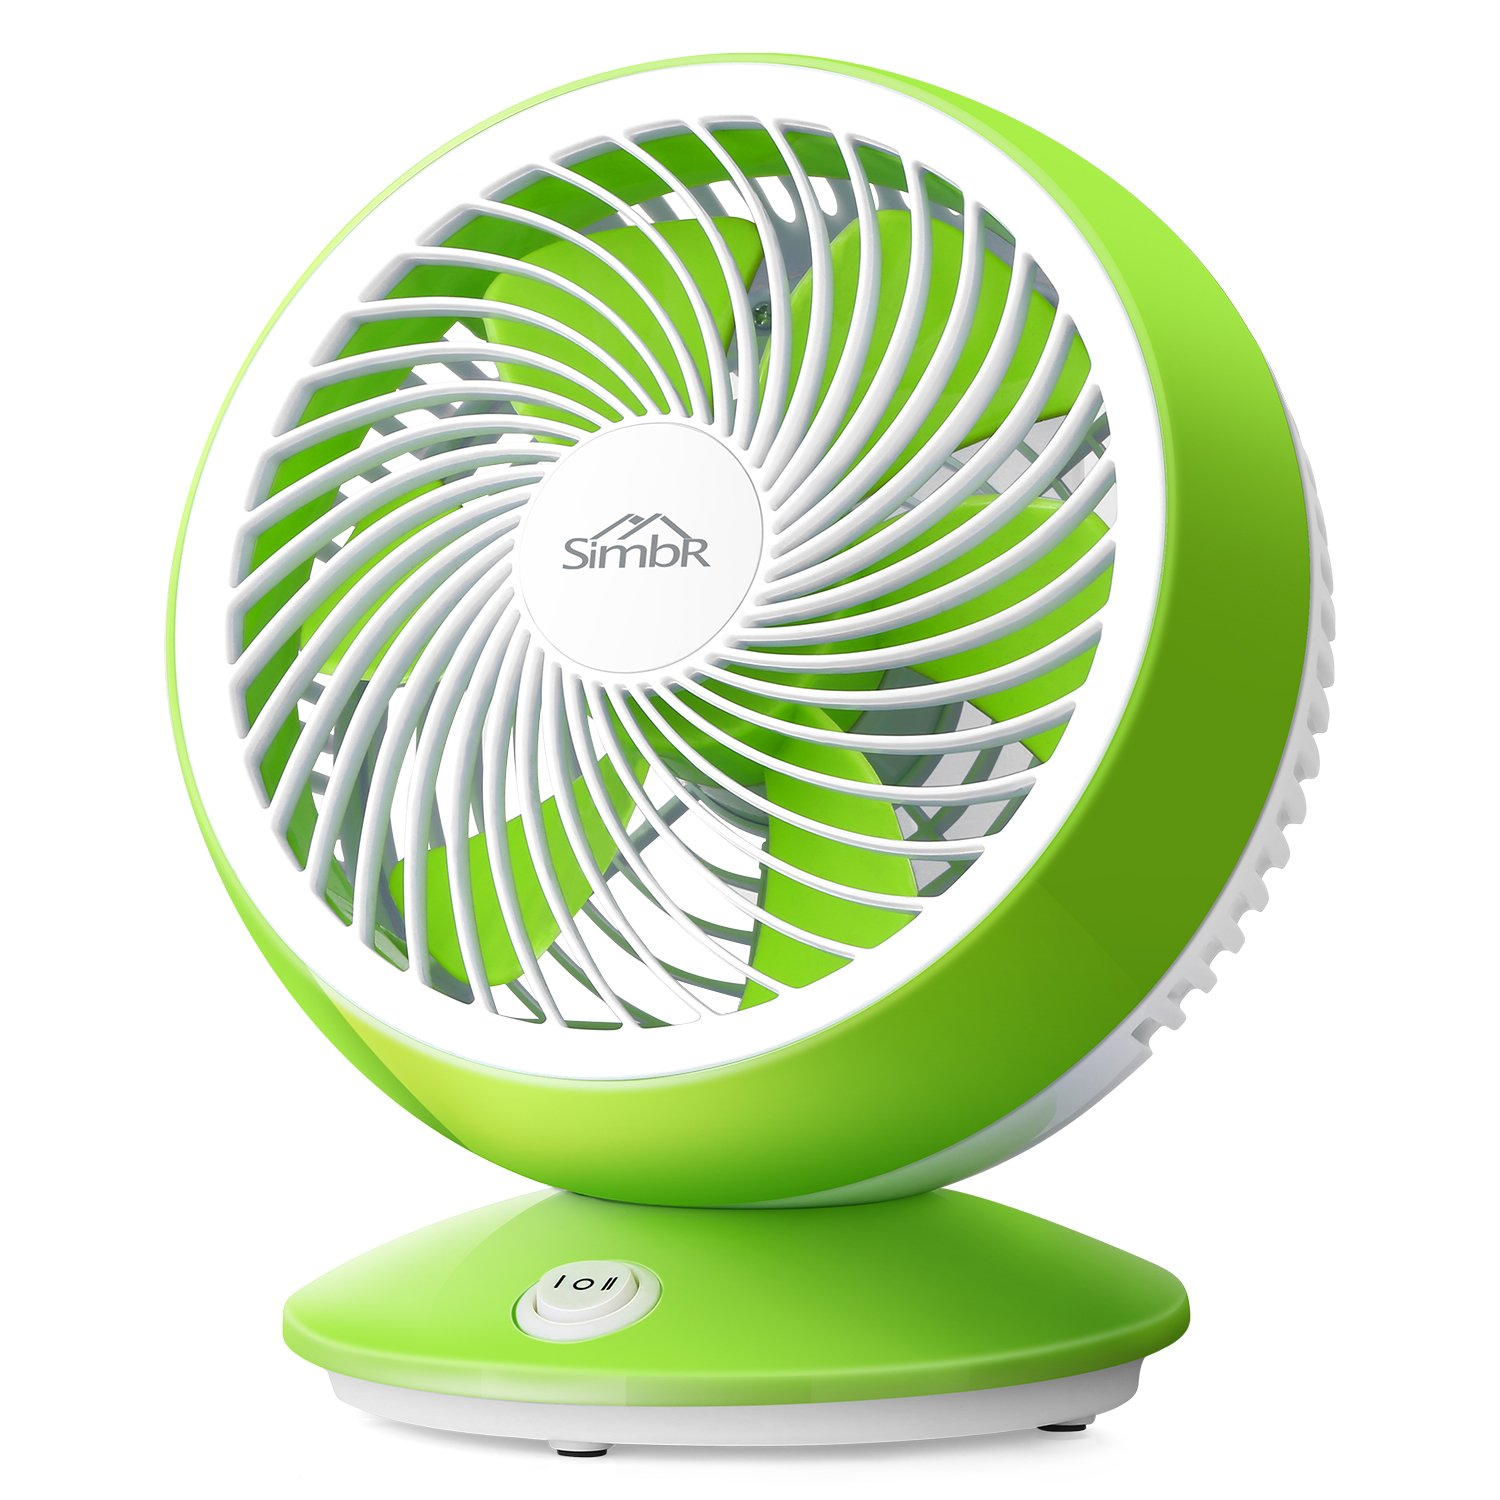 SIMBR F-1 Desk Fan 6 Inch Portable Fan Mini USB Fan With 2 Speed Adjustable (Fresh Appearance, Quiet Operation,High Compatibility), Green and White